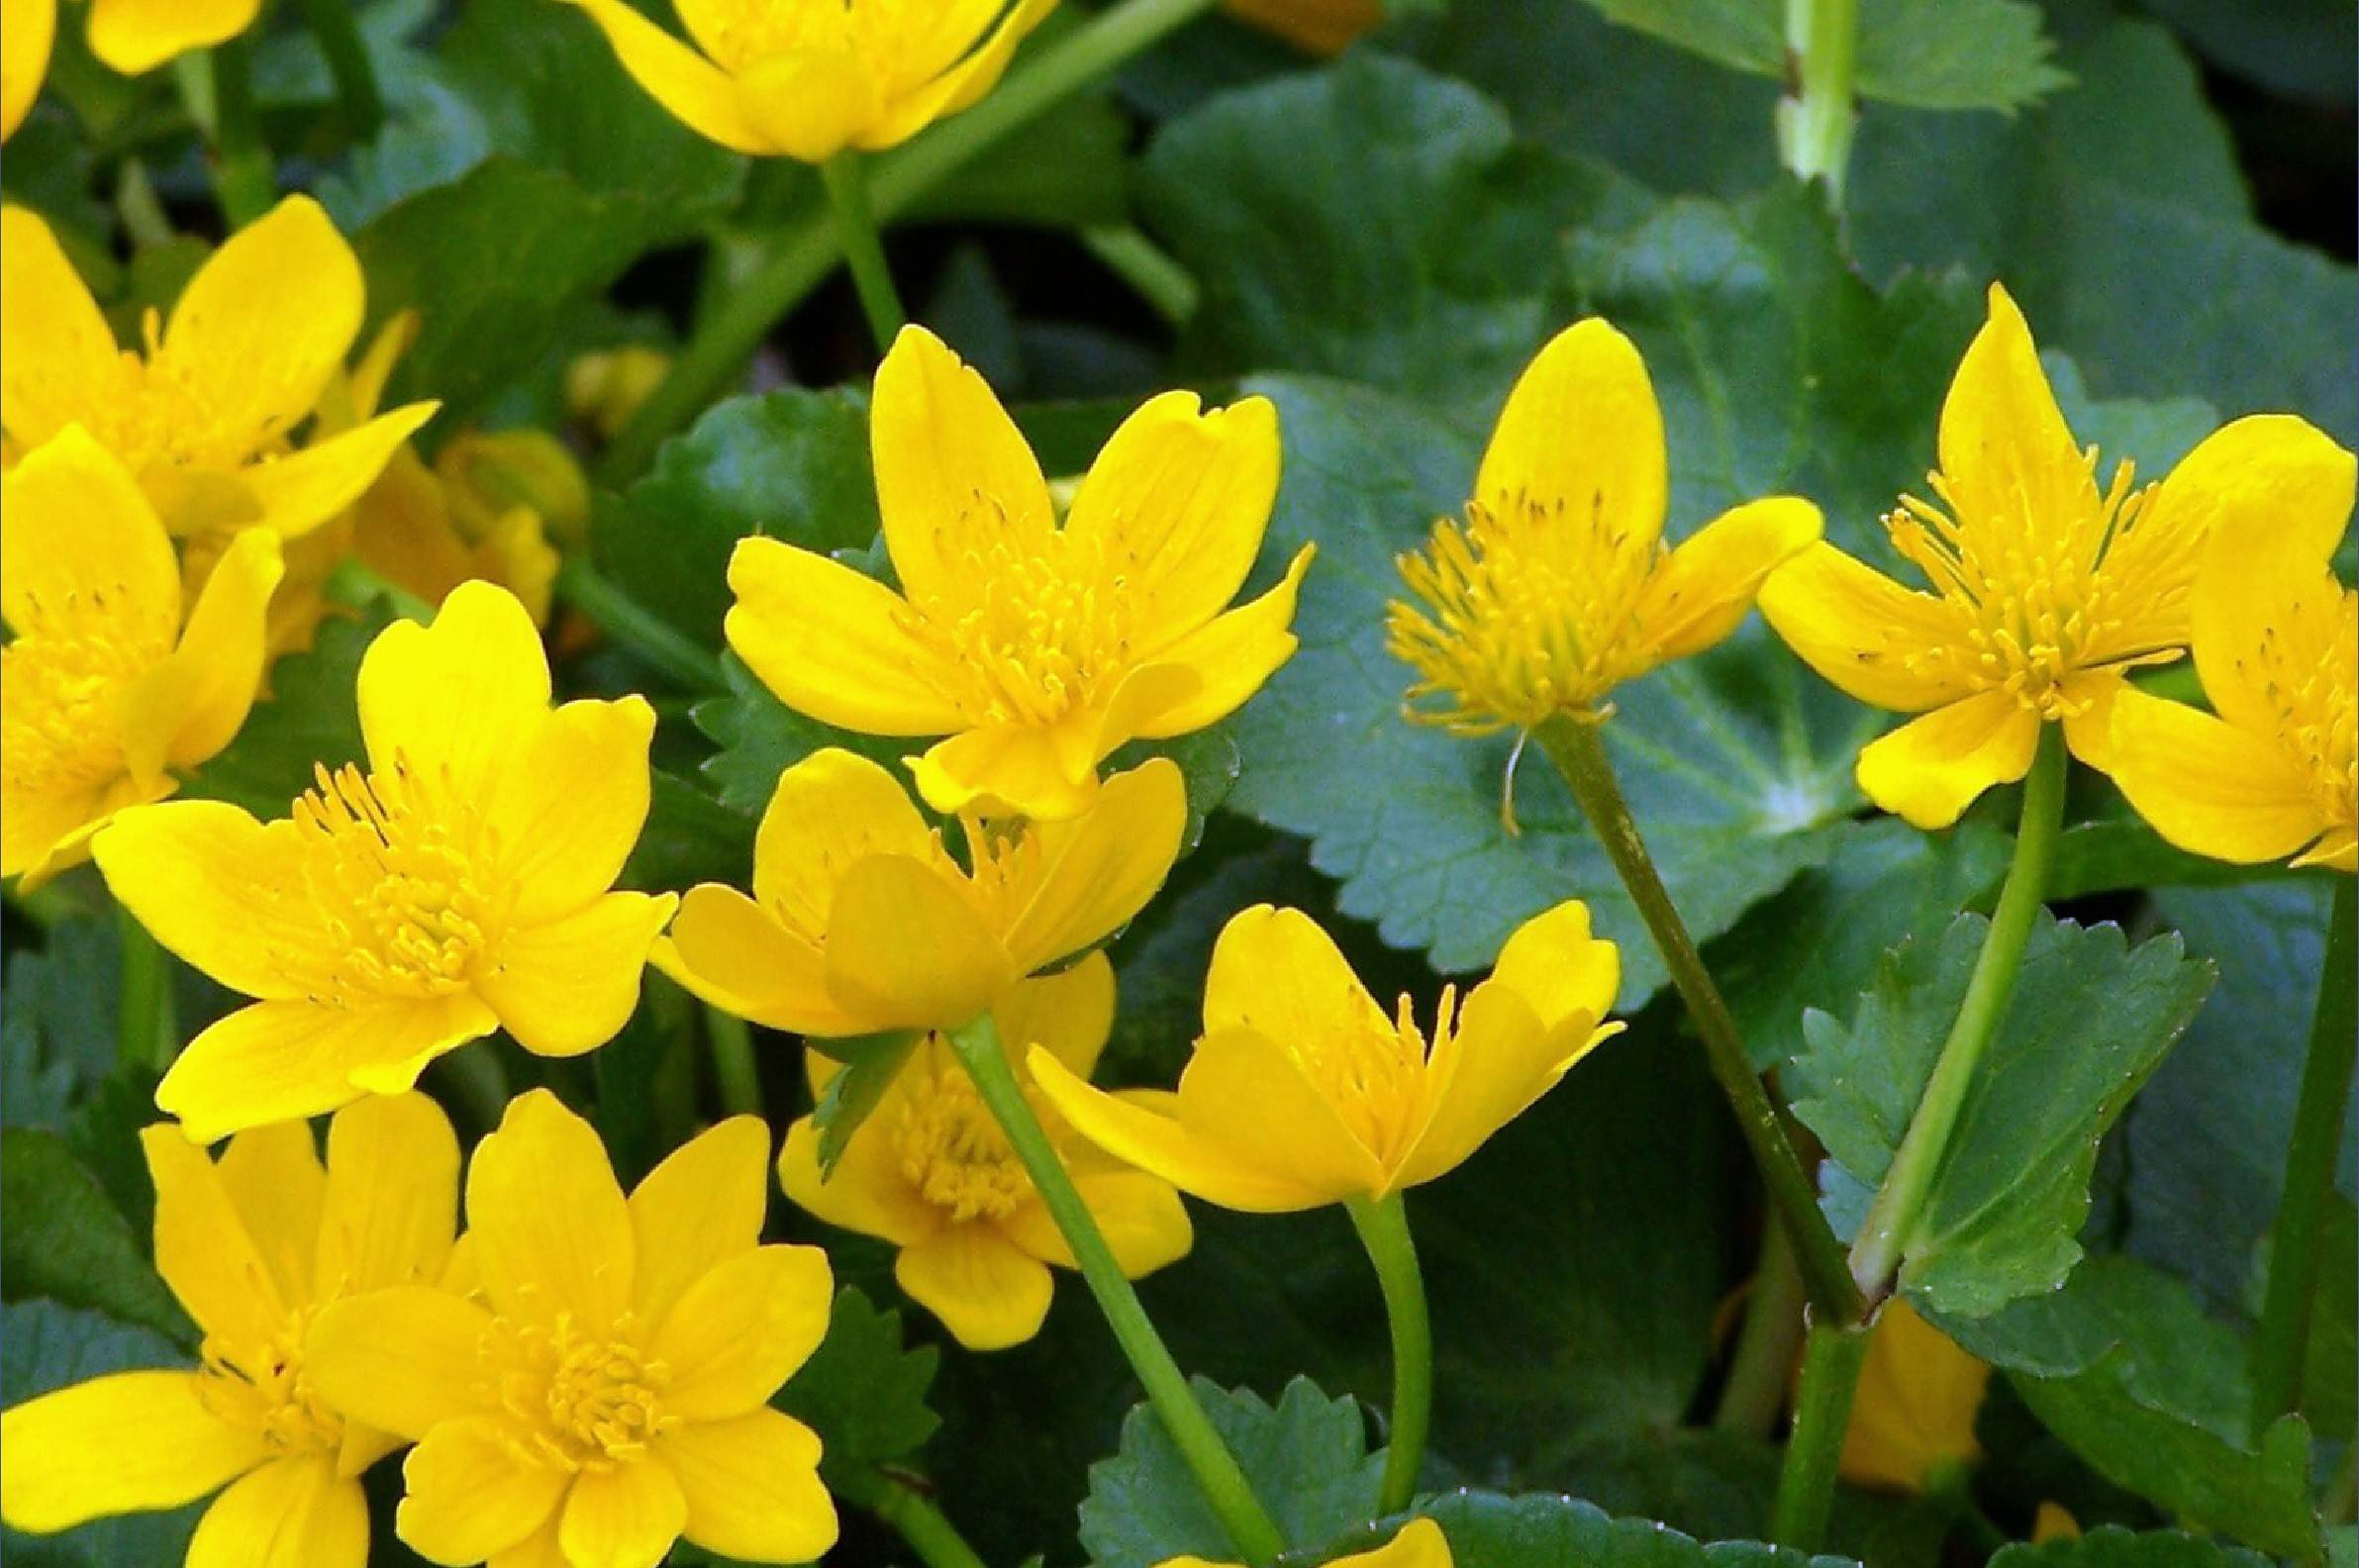 Spring ephemerals, like the marsh marigolds, may be on view during the Northern Kane County Wild Ones garden walk.